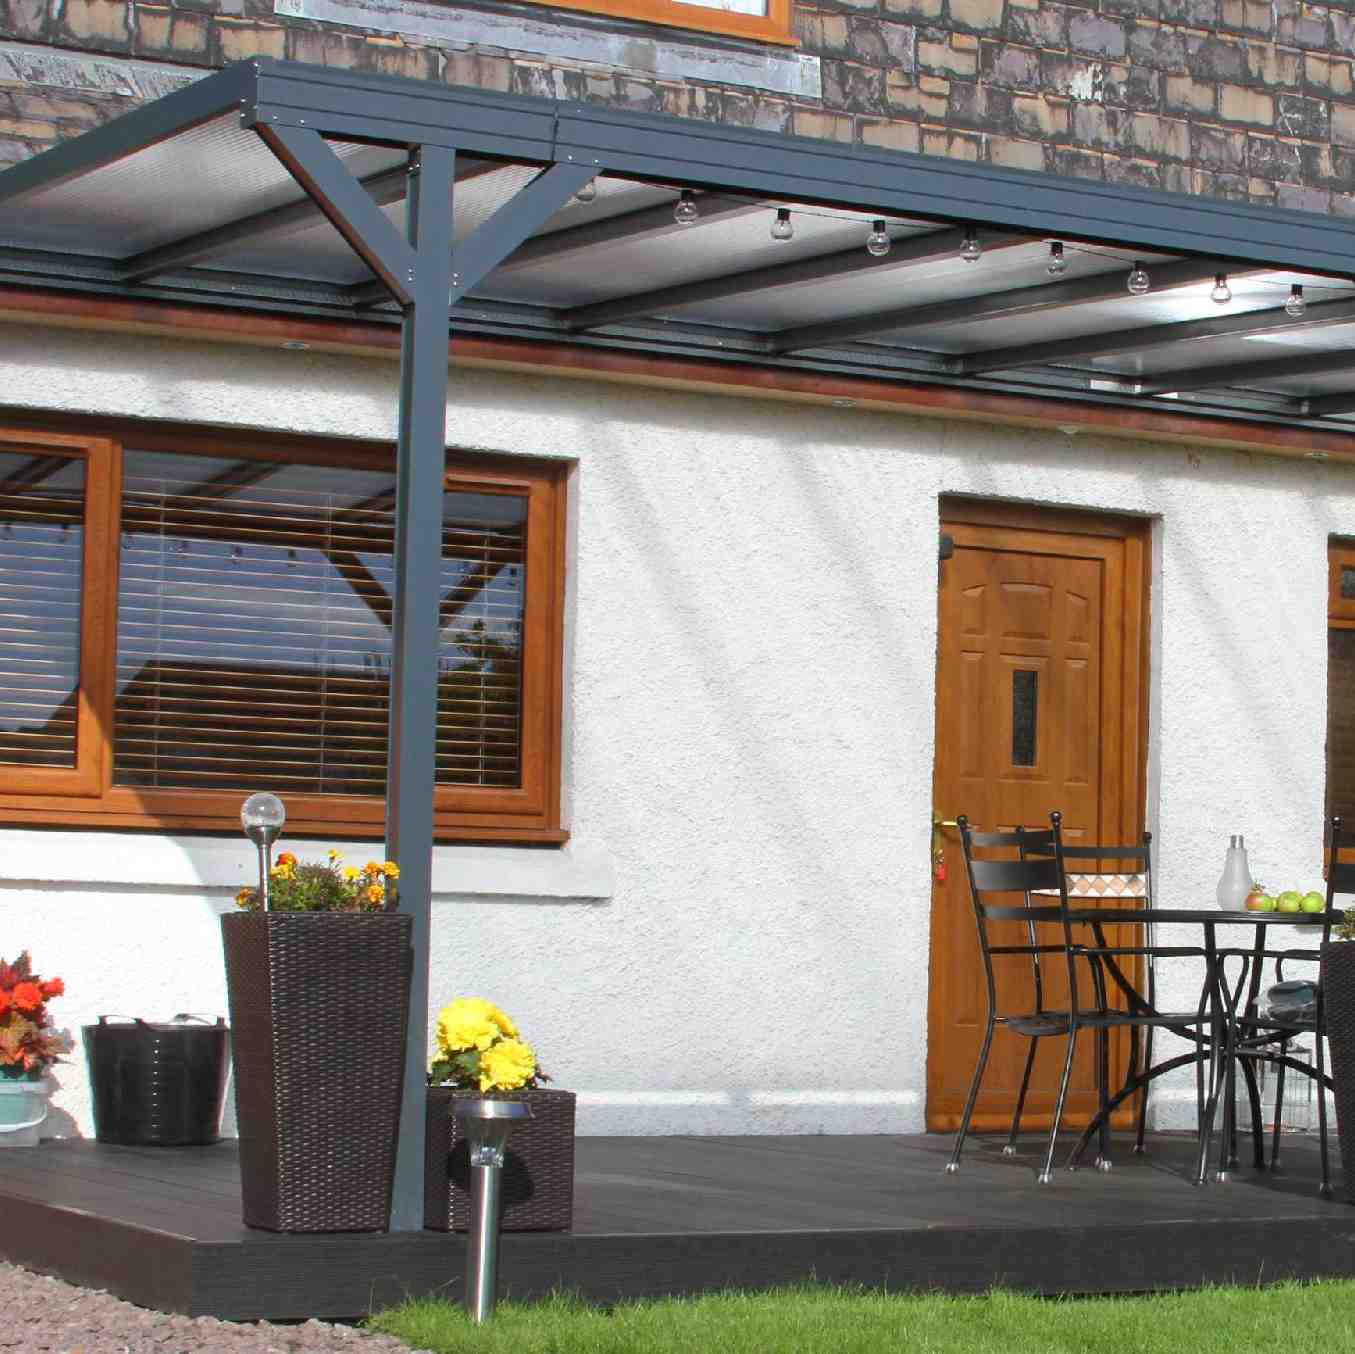 Omega Verandah, Anthracite Grey, 16mm Polycarbonate Glazing - 5.2m (W) x 2.5m (P), (3) Supporting Posts